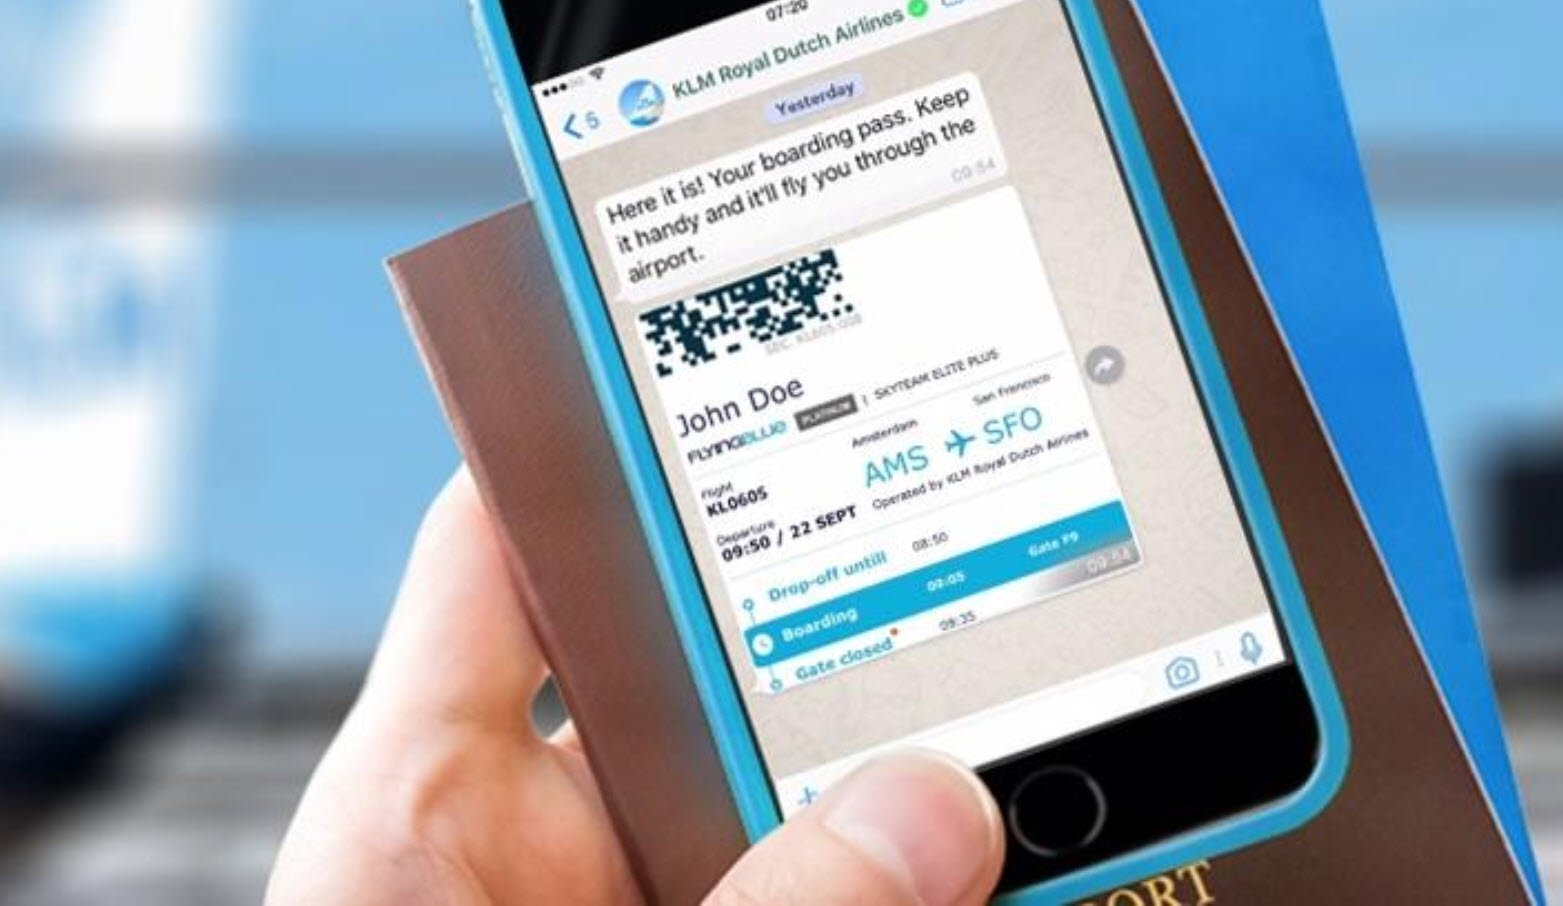 Klm application iphone